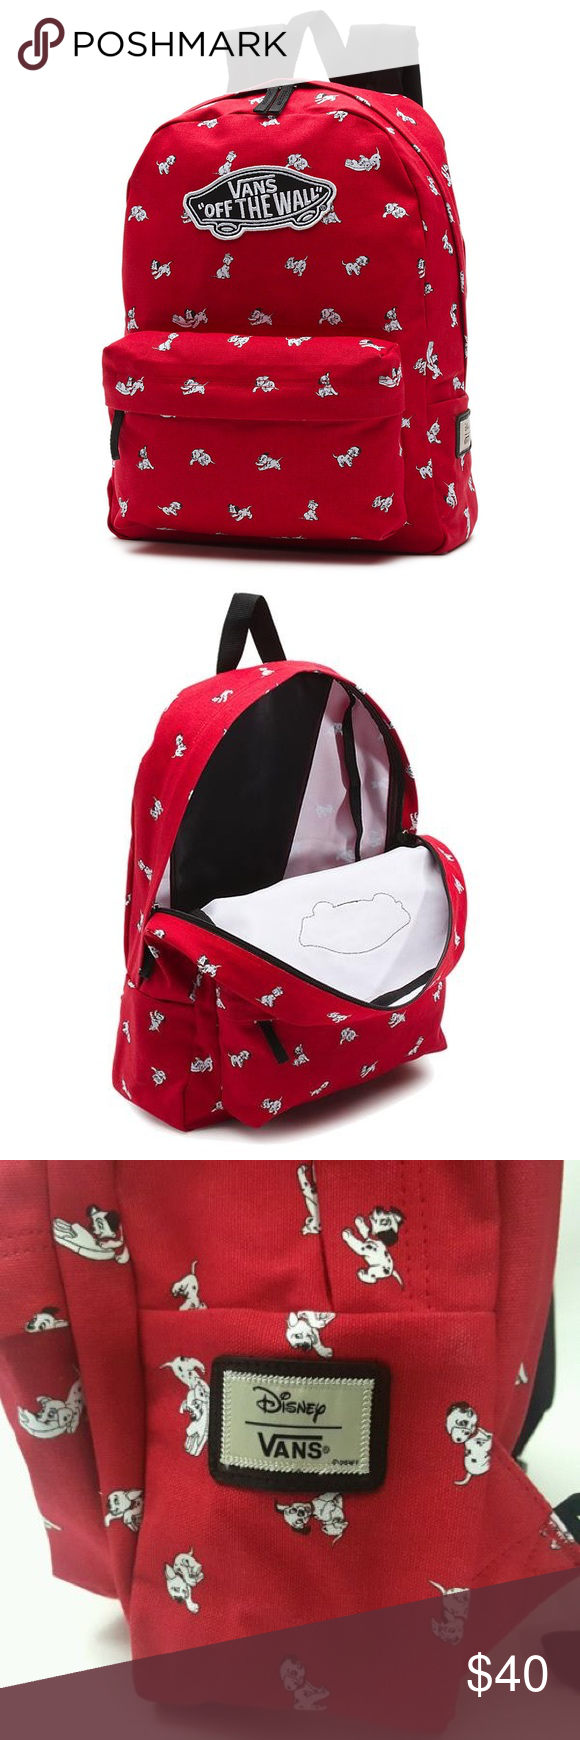 43b308ee562 Red Dalmatian Vans Backpack- Fenix Toulouse Handball